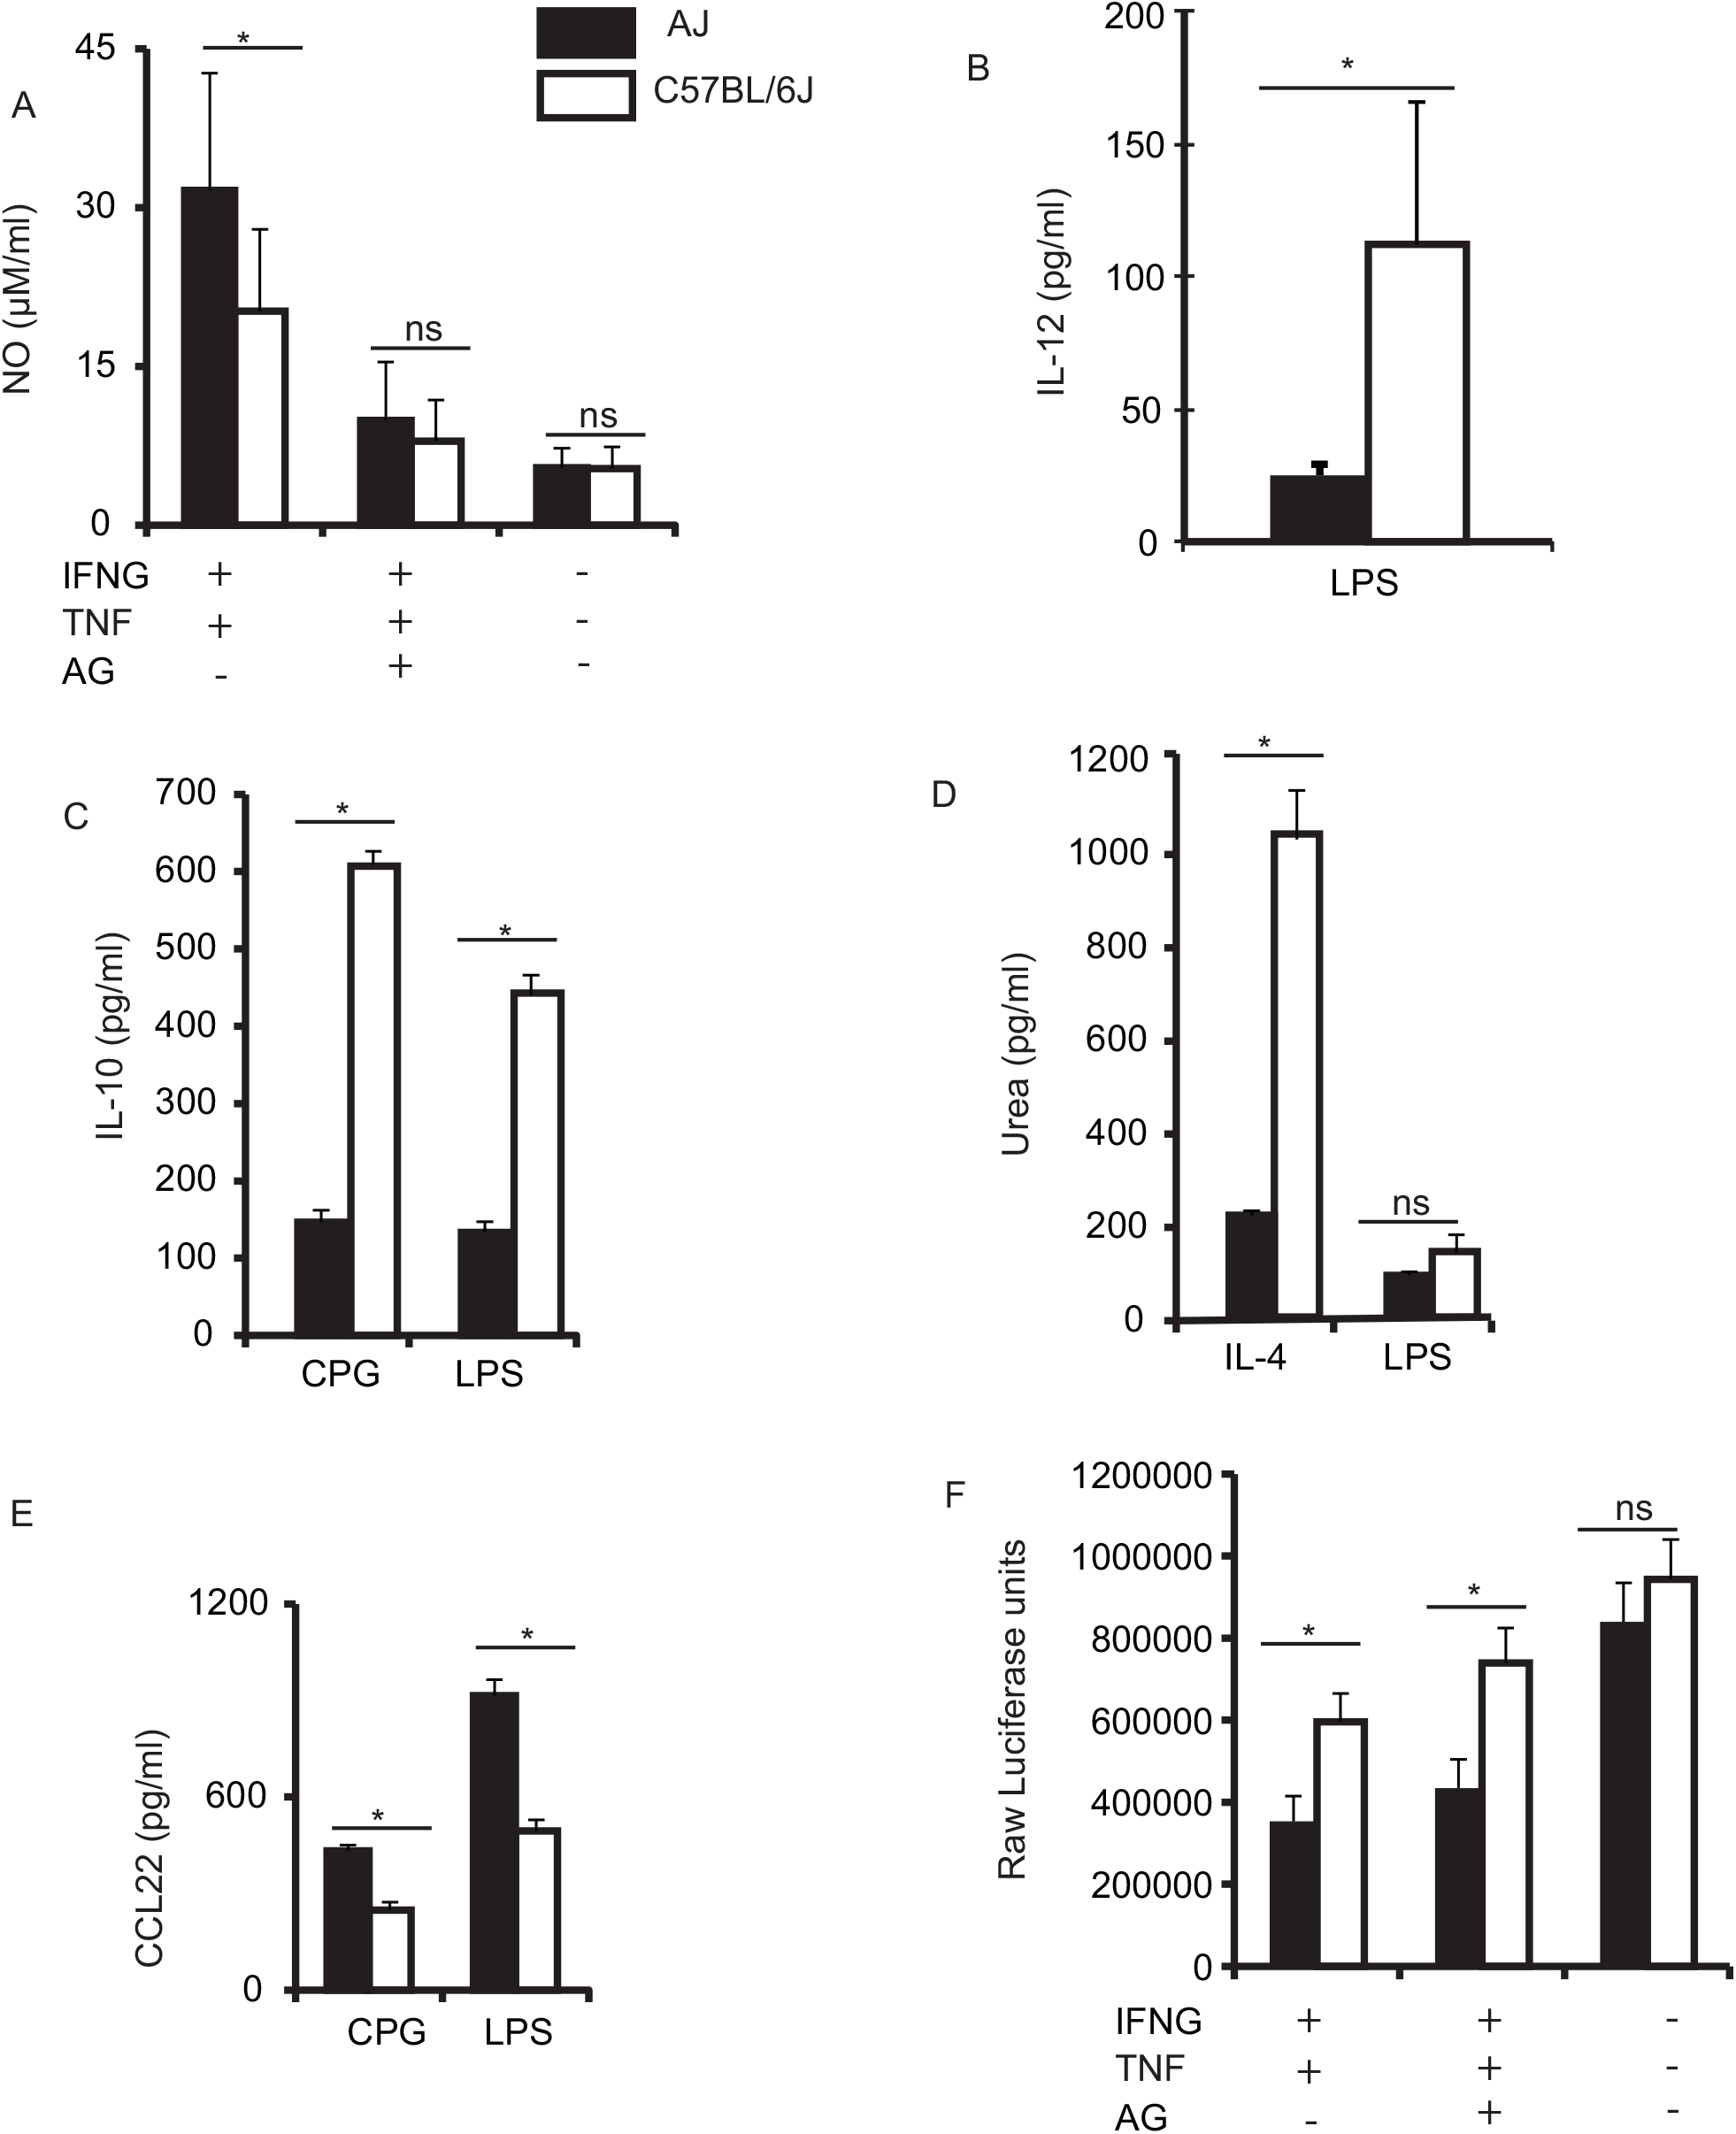 BMDM from AJ and B6 mice differ in their response to various stimuli.